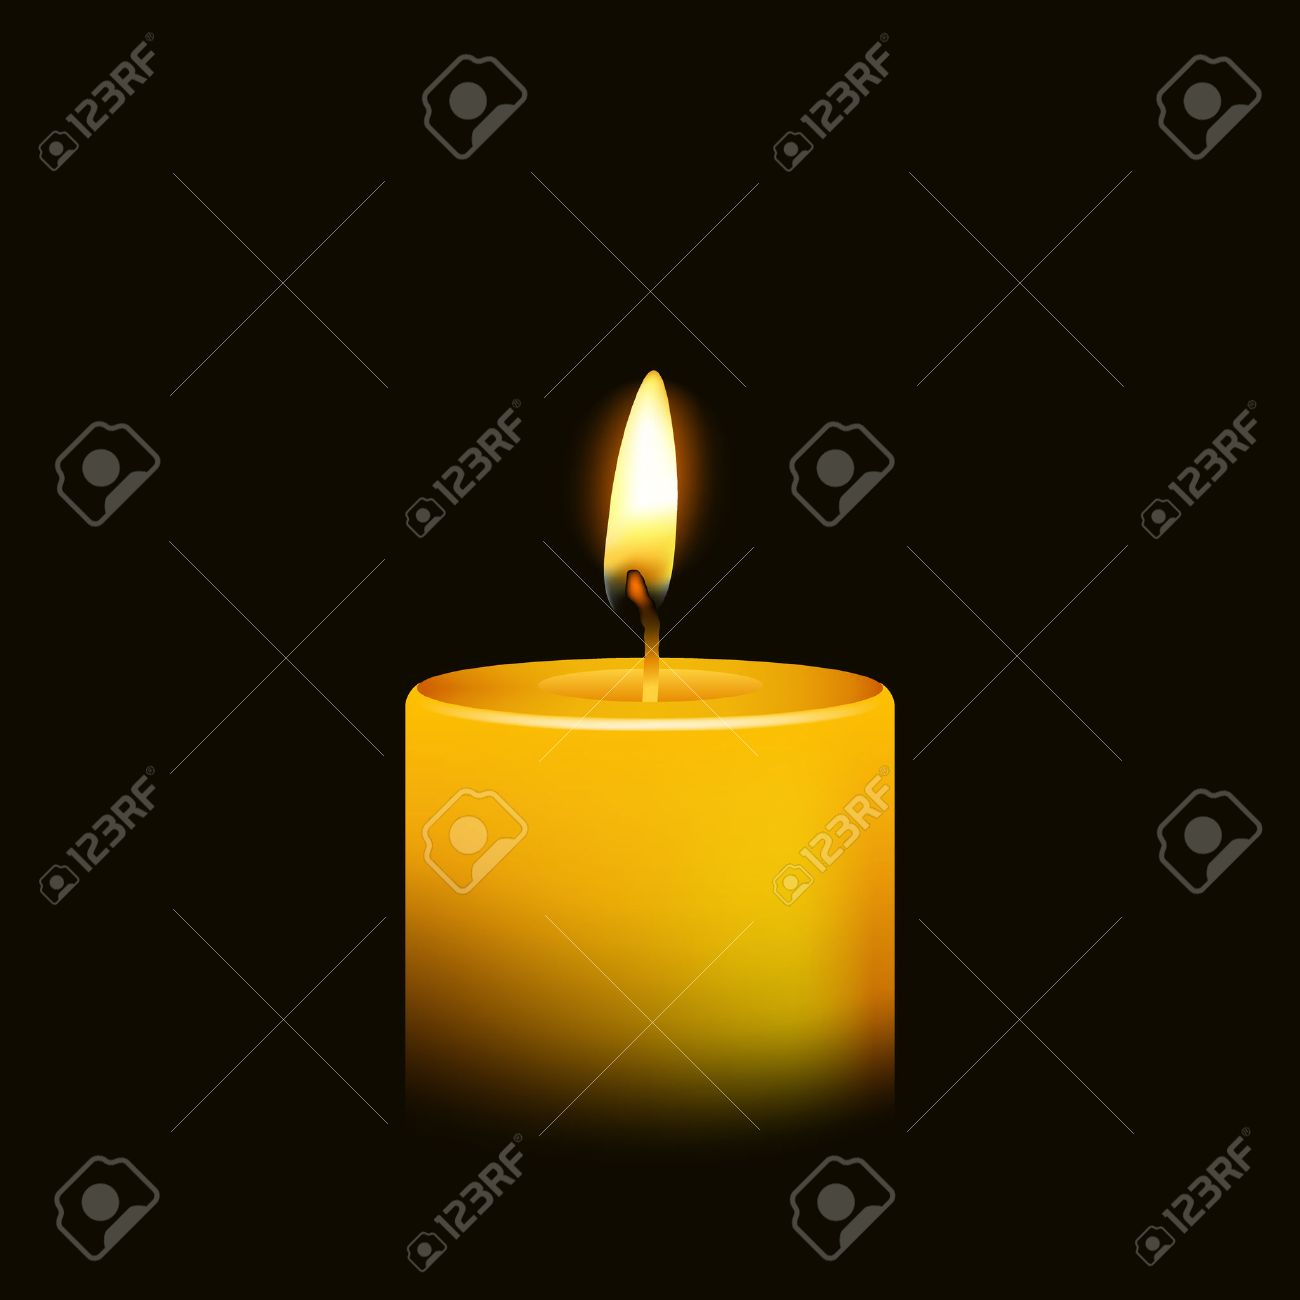 One candle flame at night closeup - isolated. Vector illustration. - 37234889